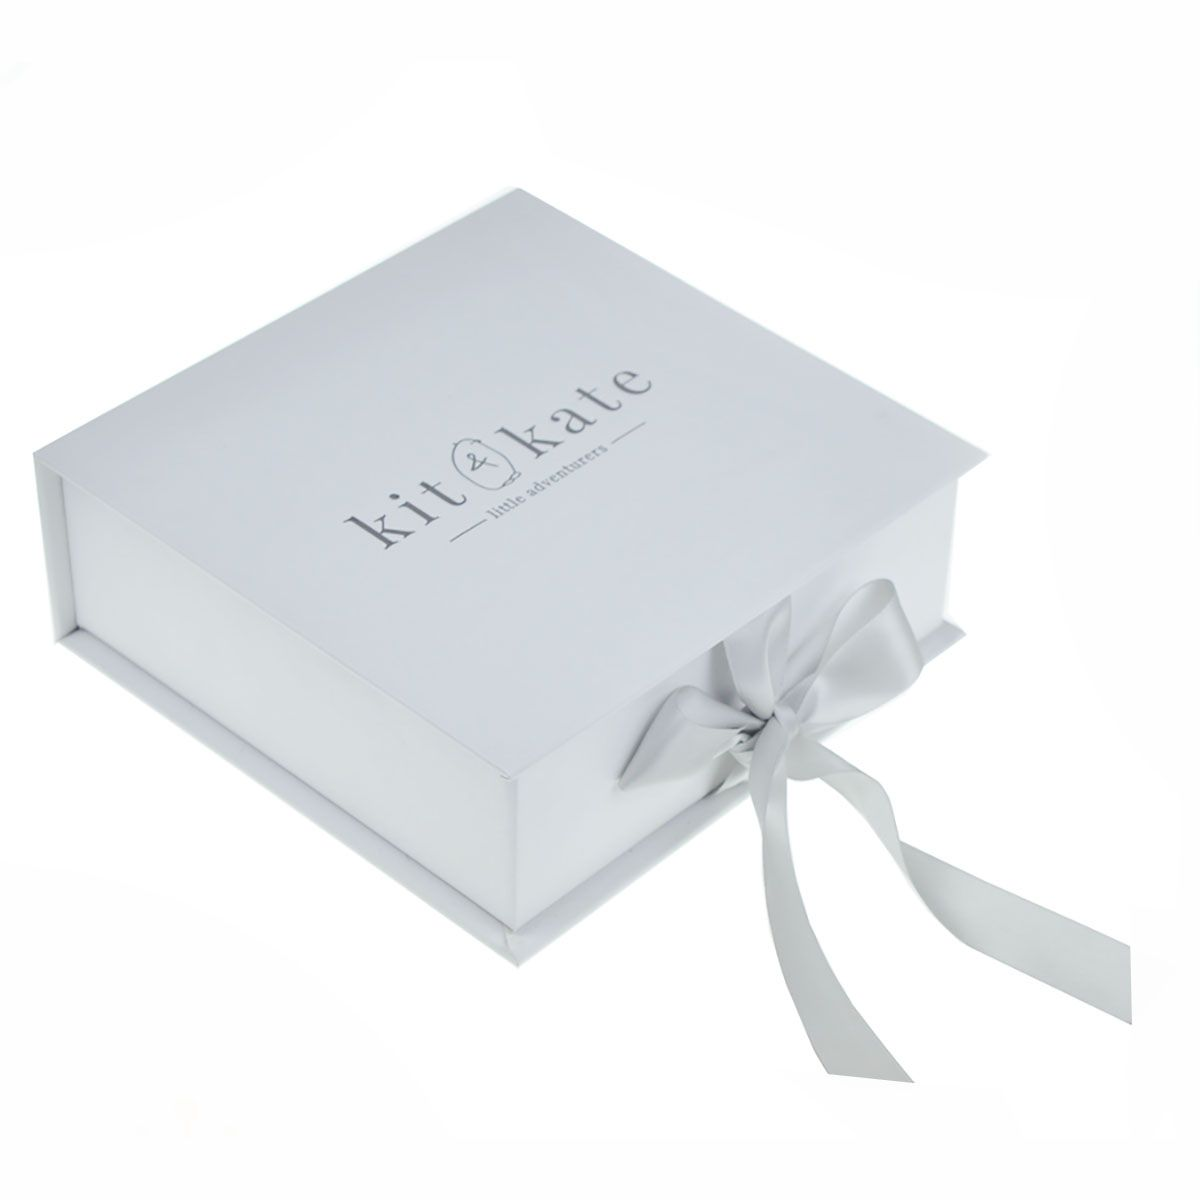 Beautiful white embossed logo paper box for wedding invitation cards ...